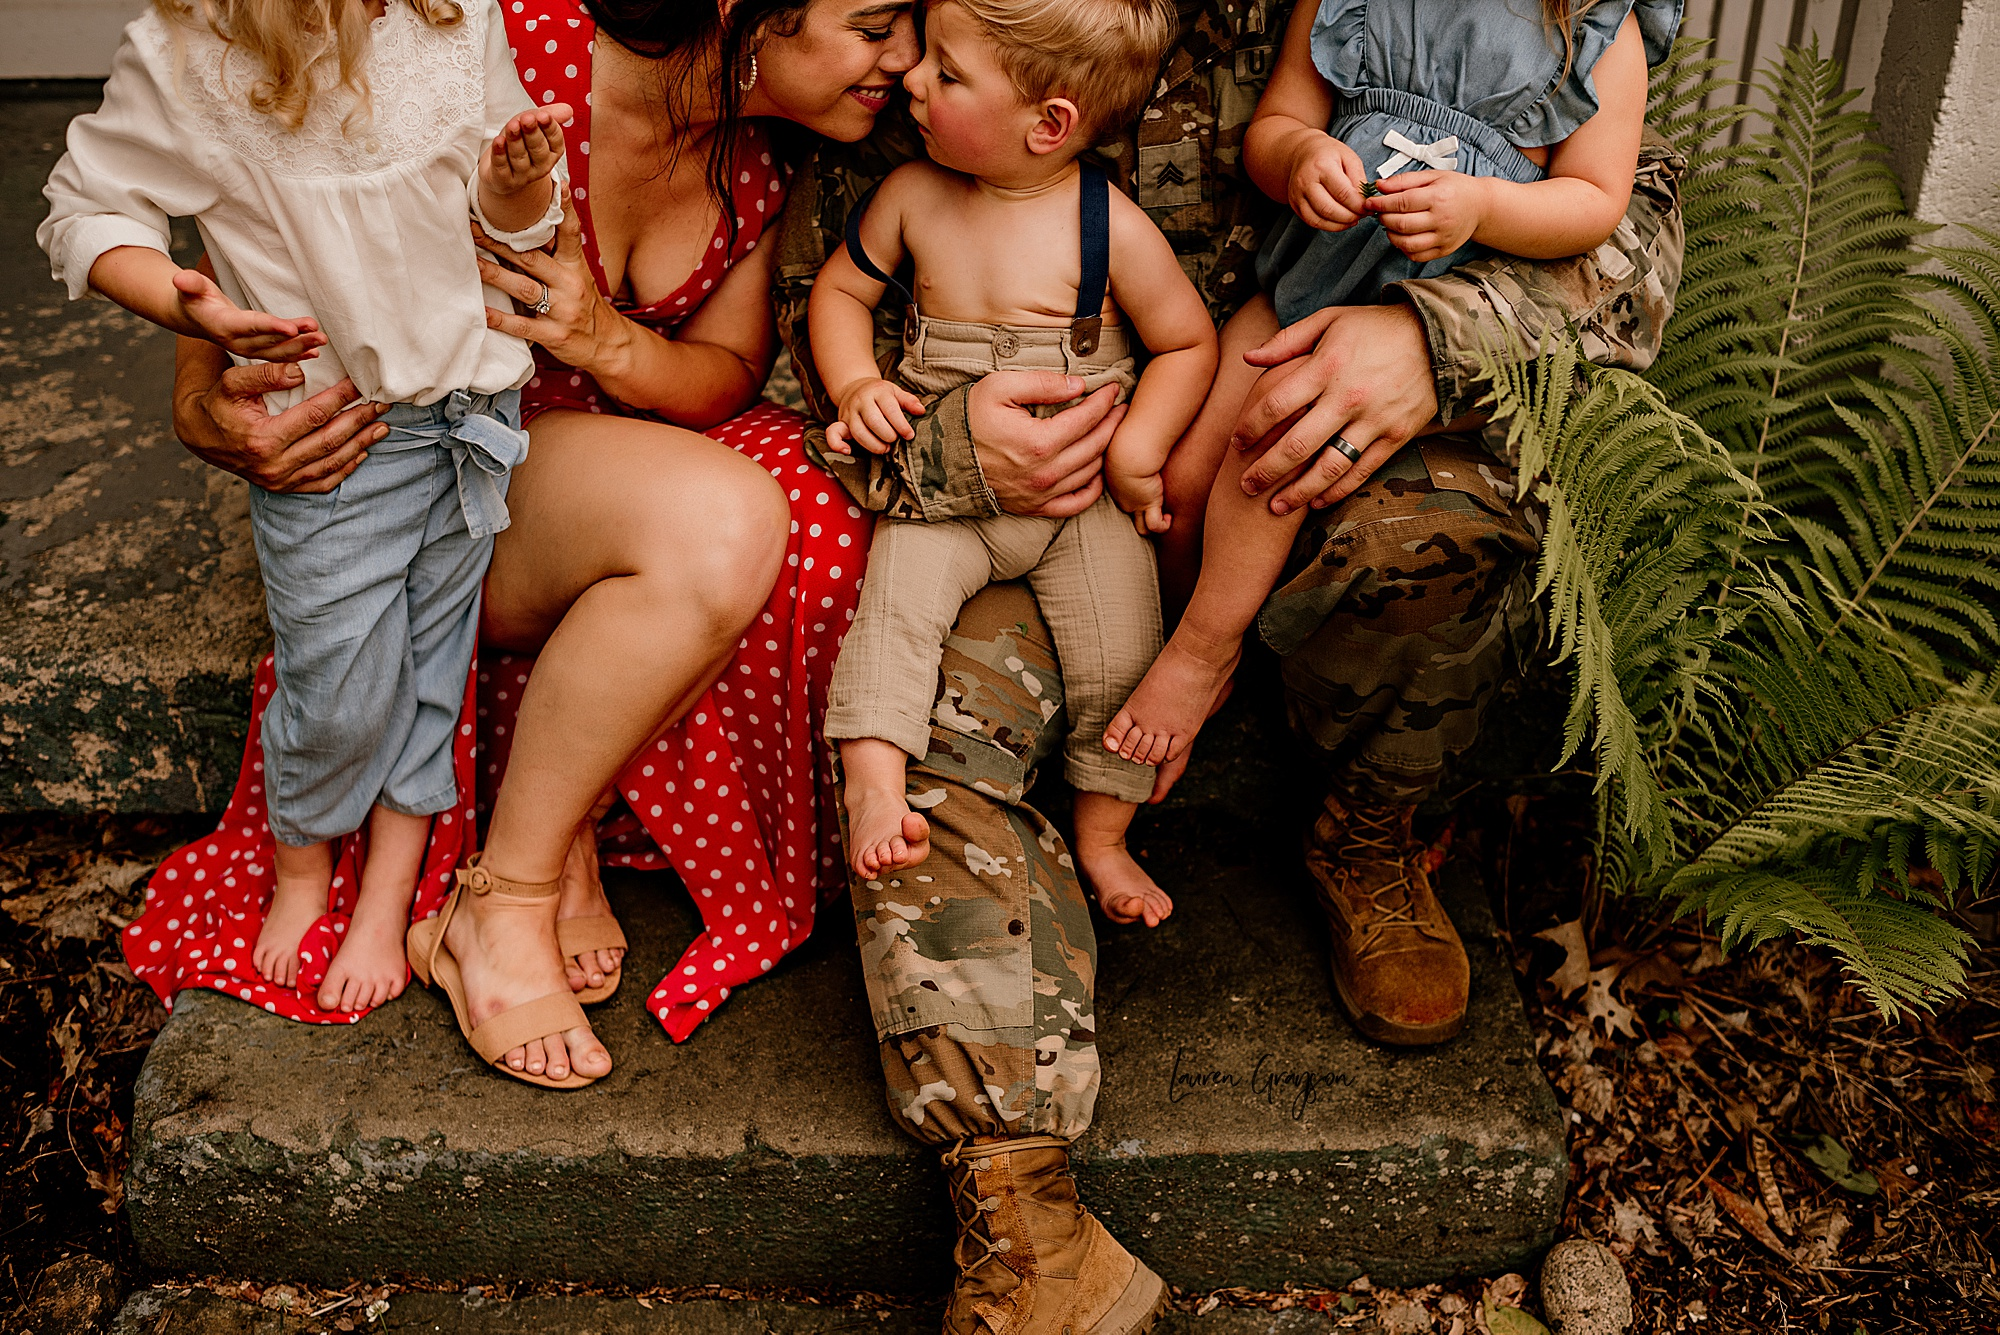 photographer canton Ohio military family photo session outdoors in the summer fields Lauren Grayson photography